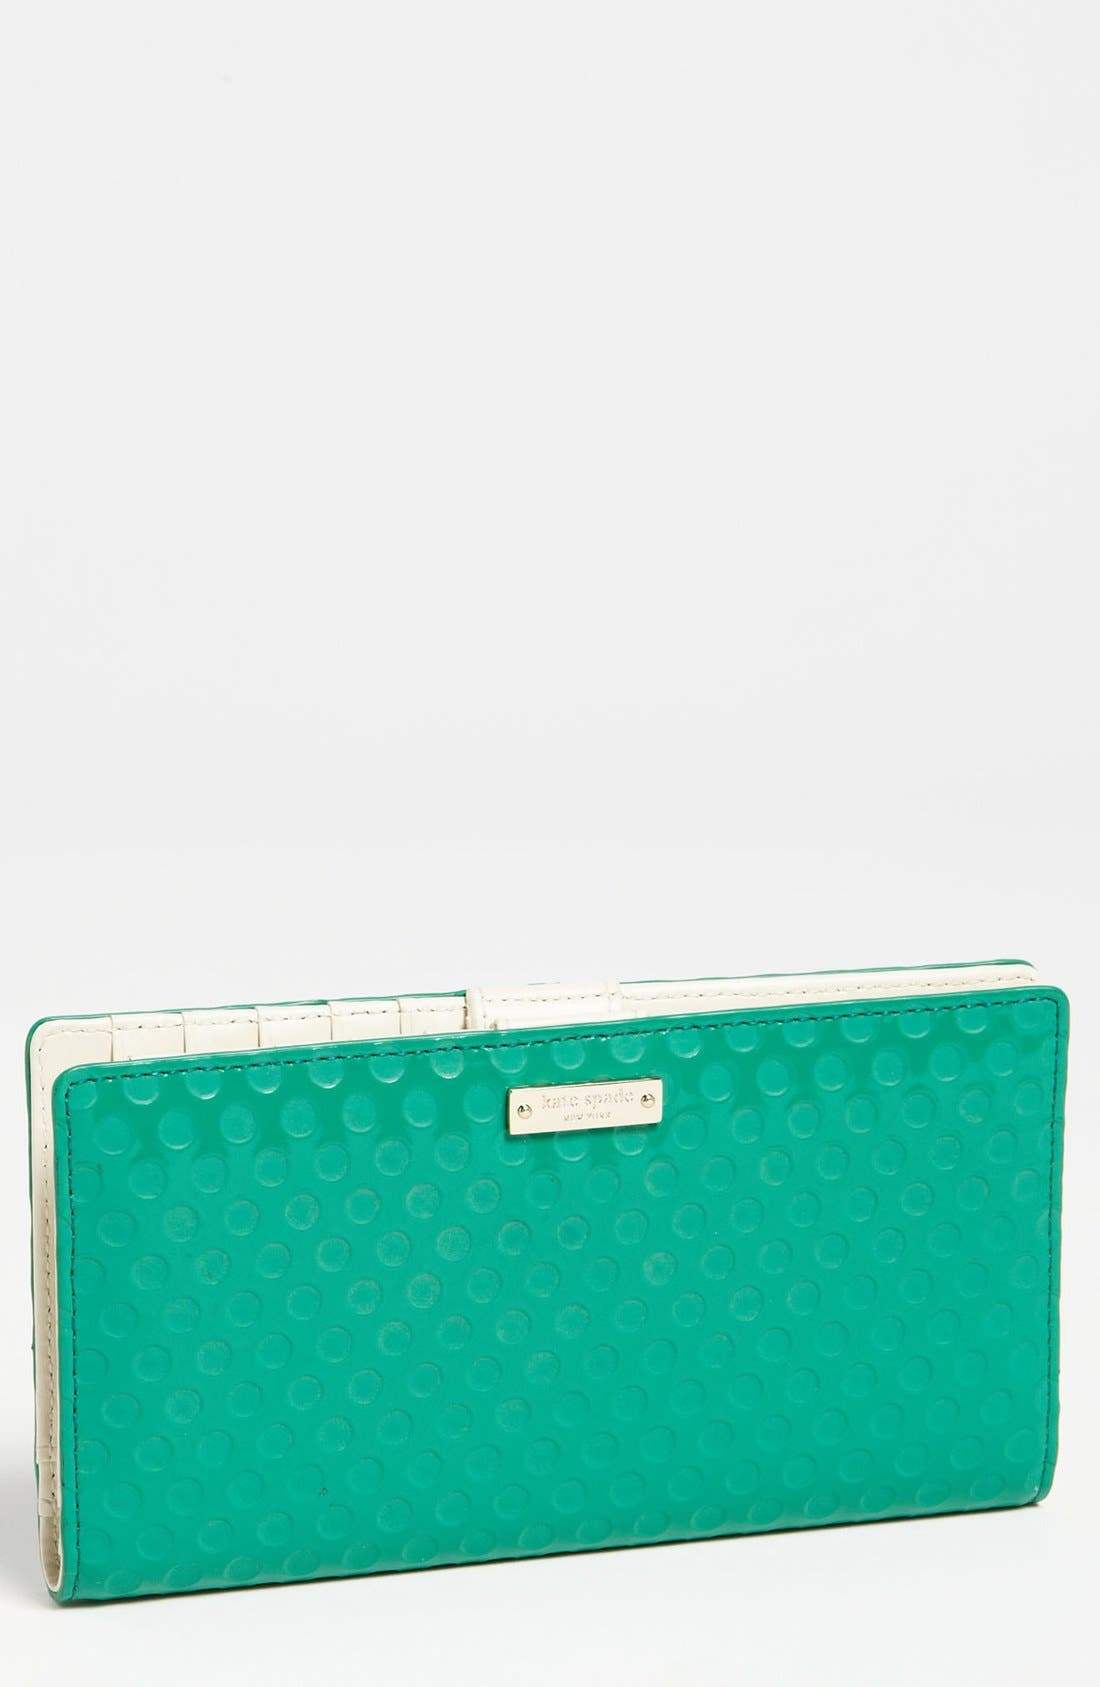 Alternate Image 1 Selected - kate spade new york 'carmine street - stacy' wallet